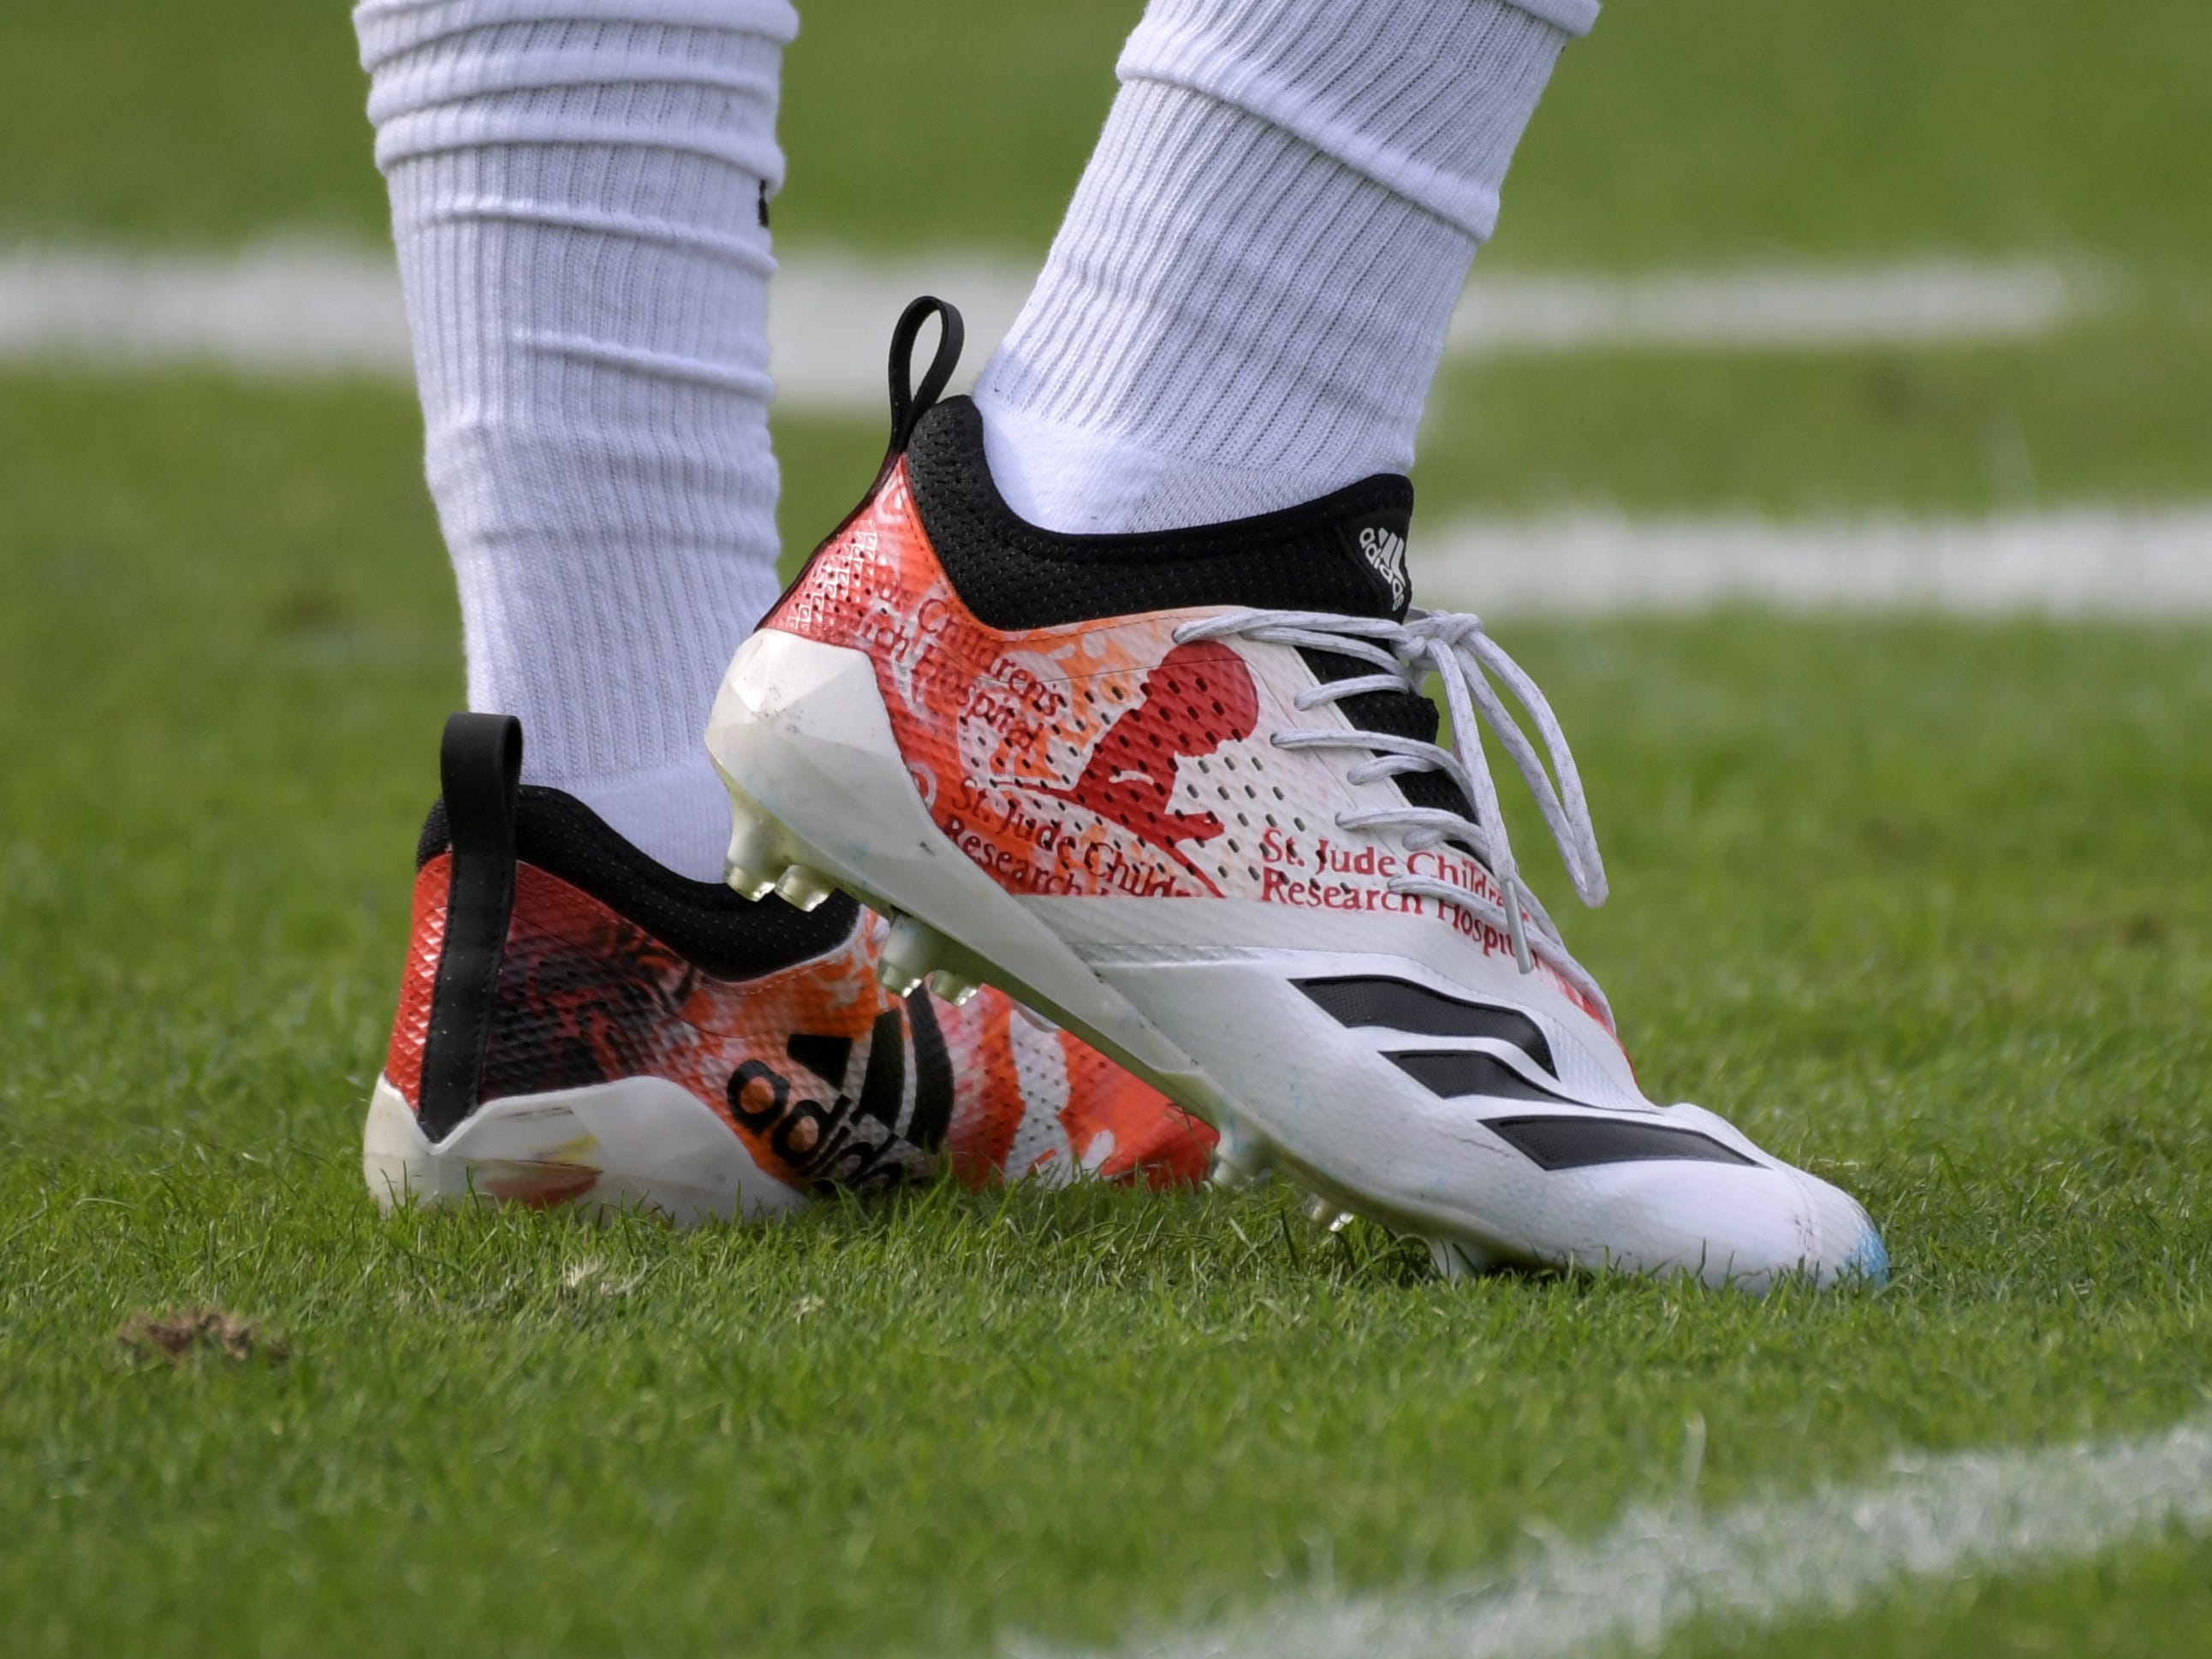 Cincinnati Bengals cornerback Darius Phillips wears personalized Adidas cleats as part of the My Cause My Cleats campaign during the game against the Los Angeles Chargers at StubHub Center.